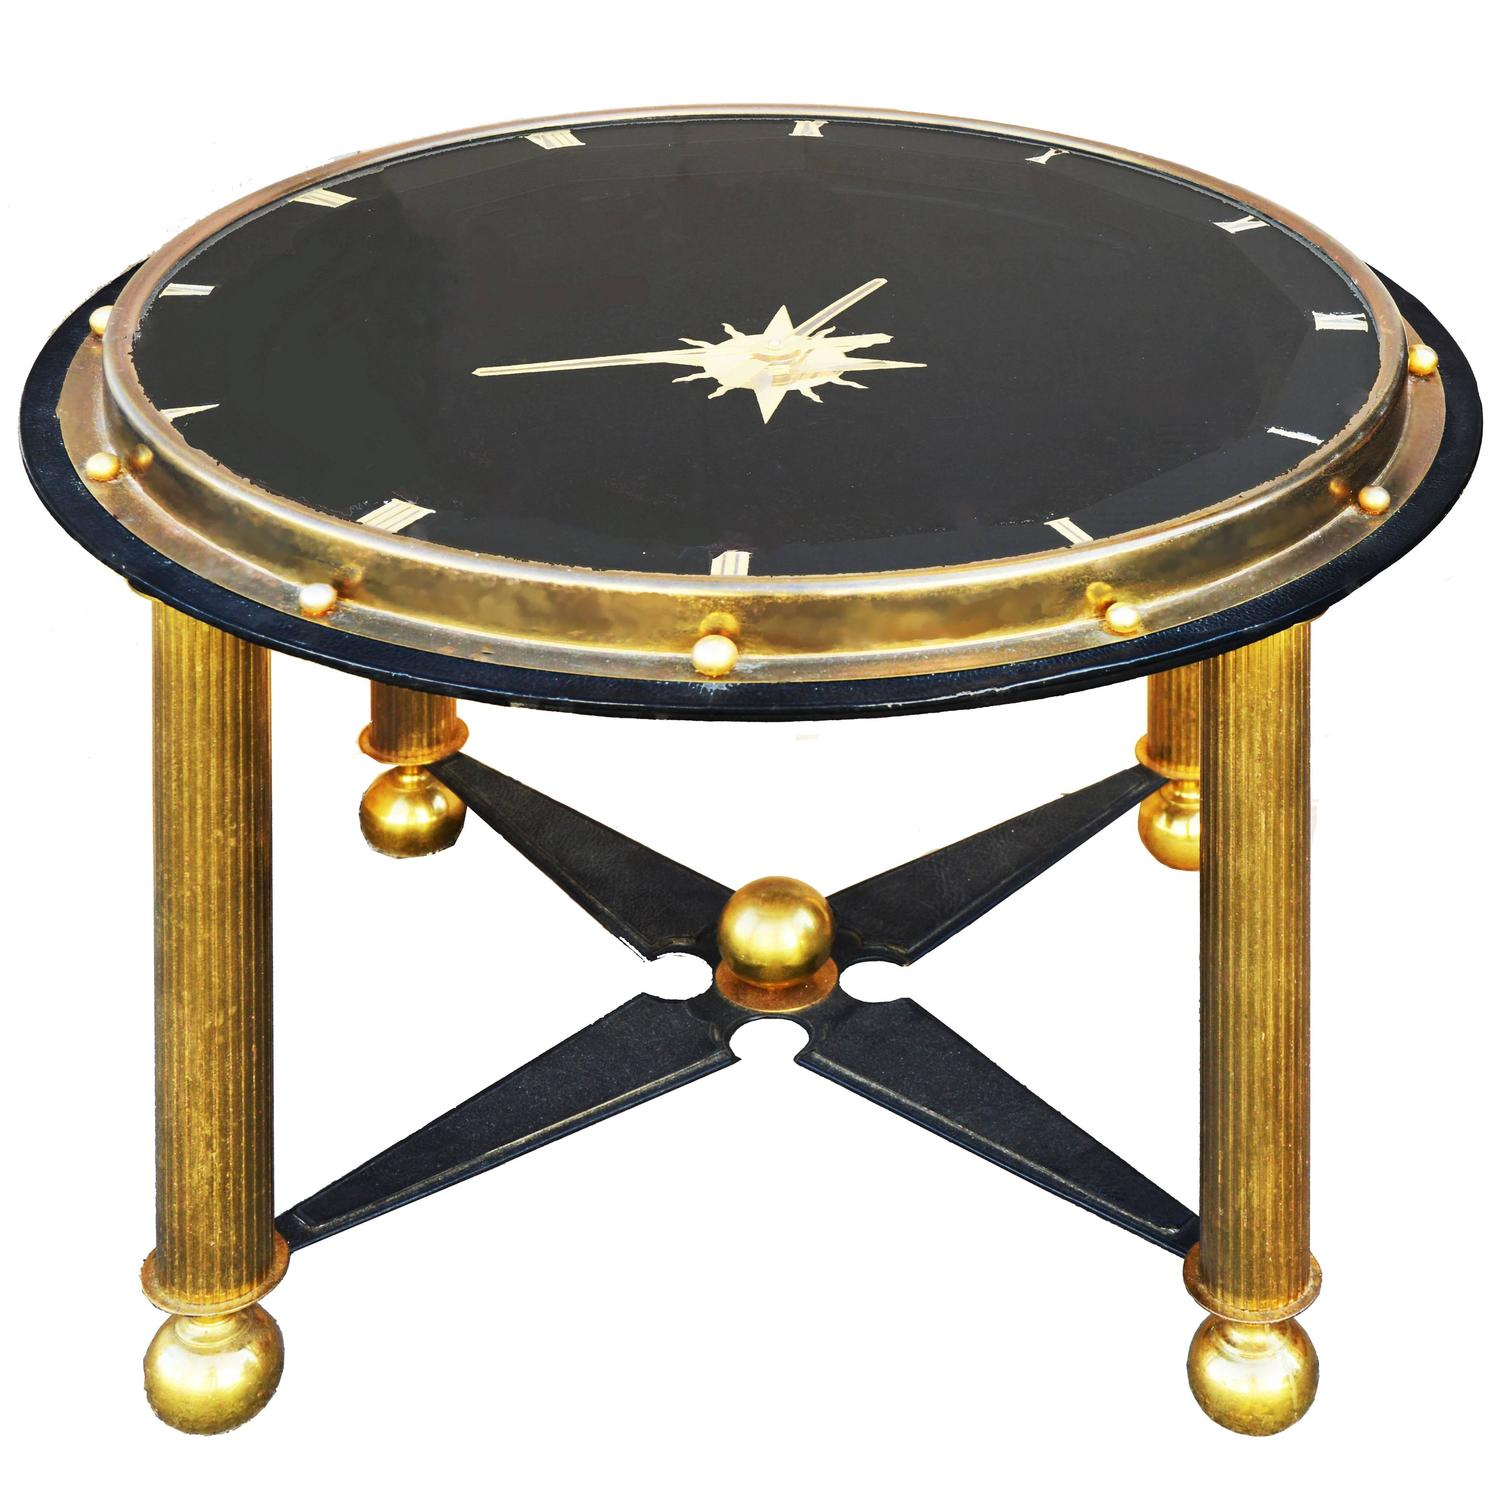 Jacques adnet style clock coffee table for sale at 1stdibs geotapseo Image collections